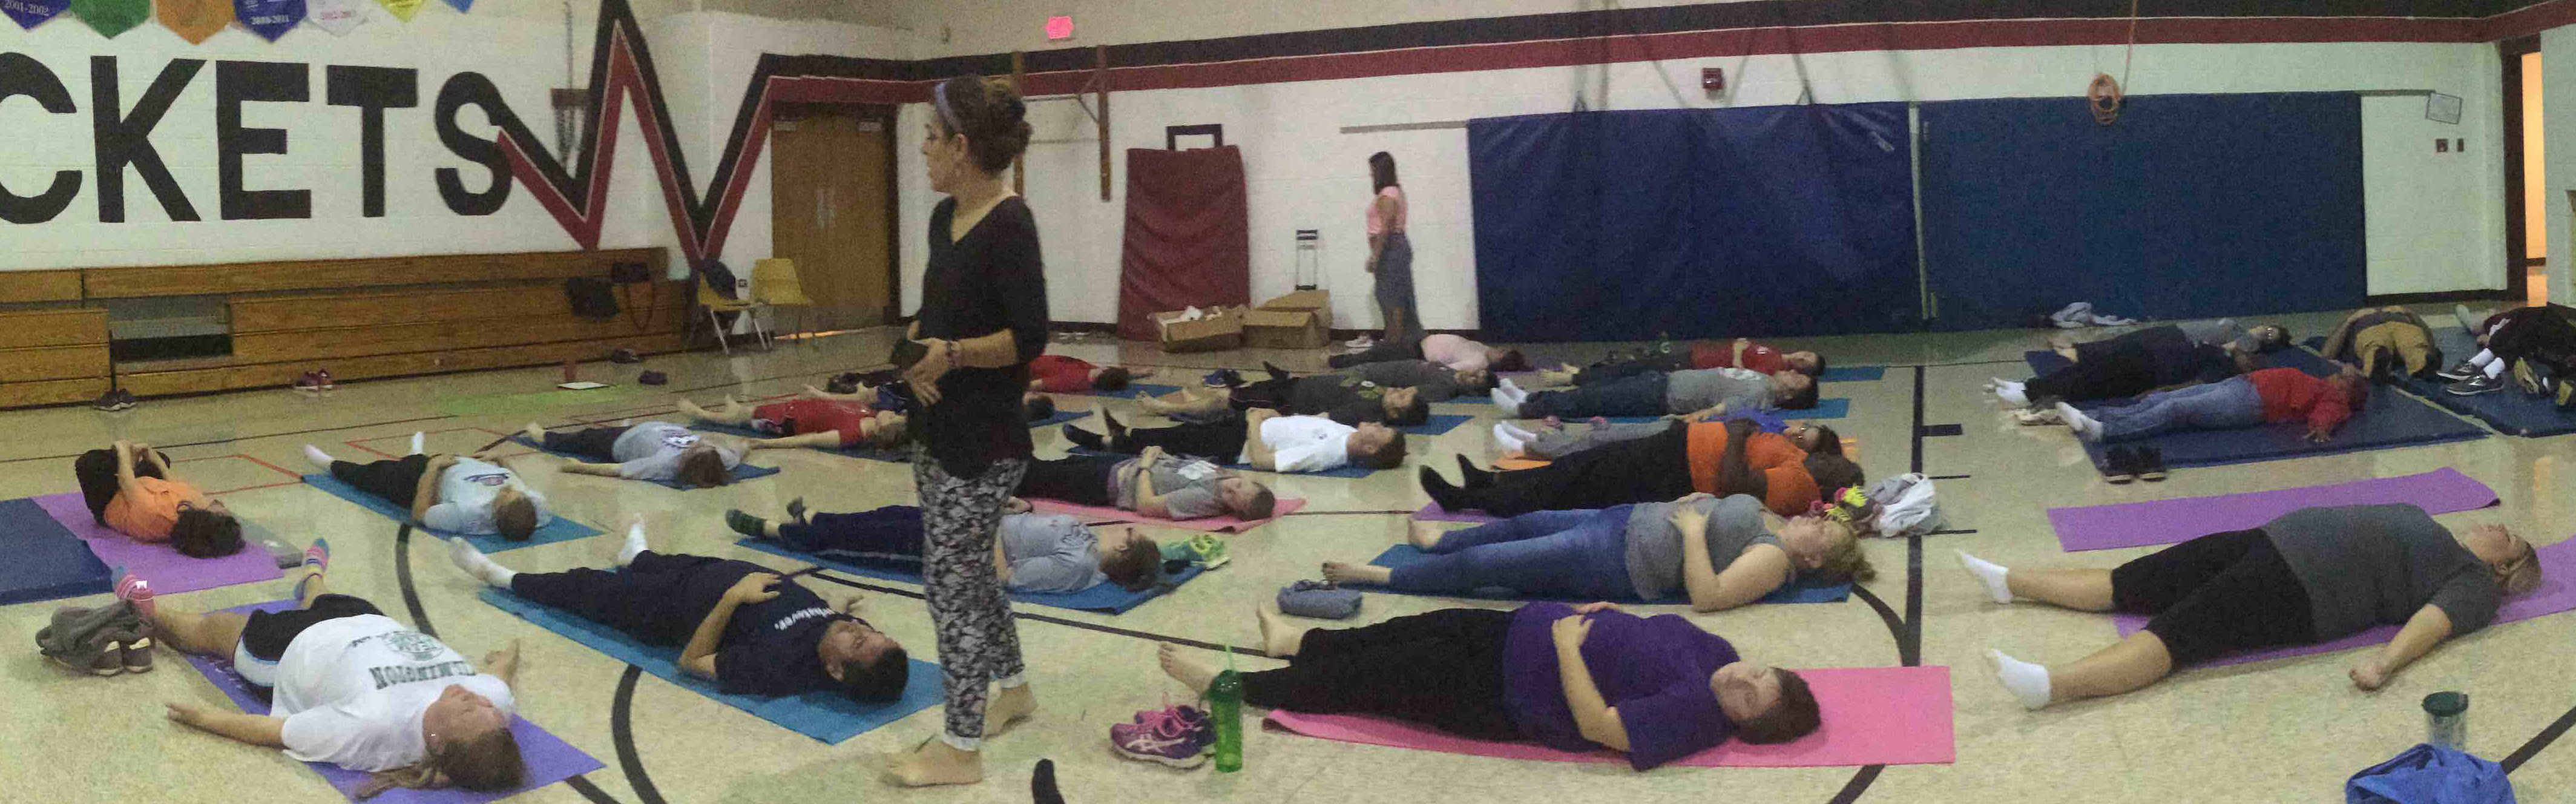 People lying on yoga mats in a gymnasium